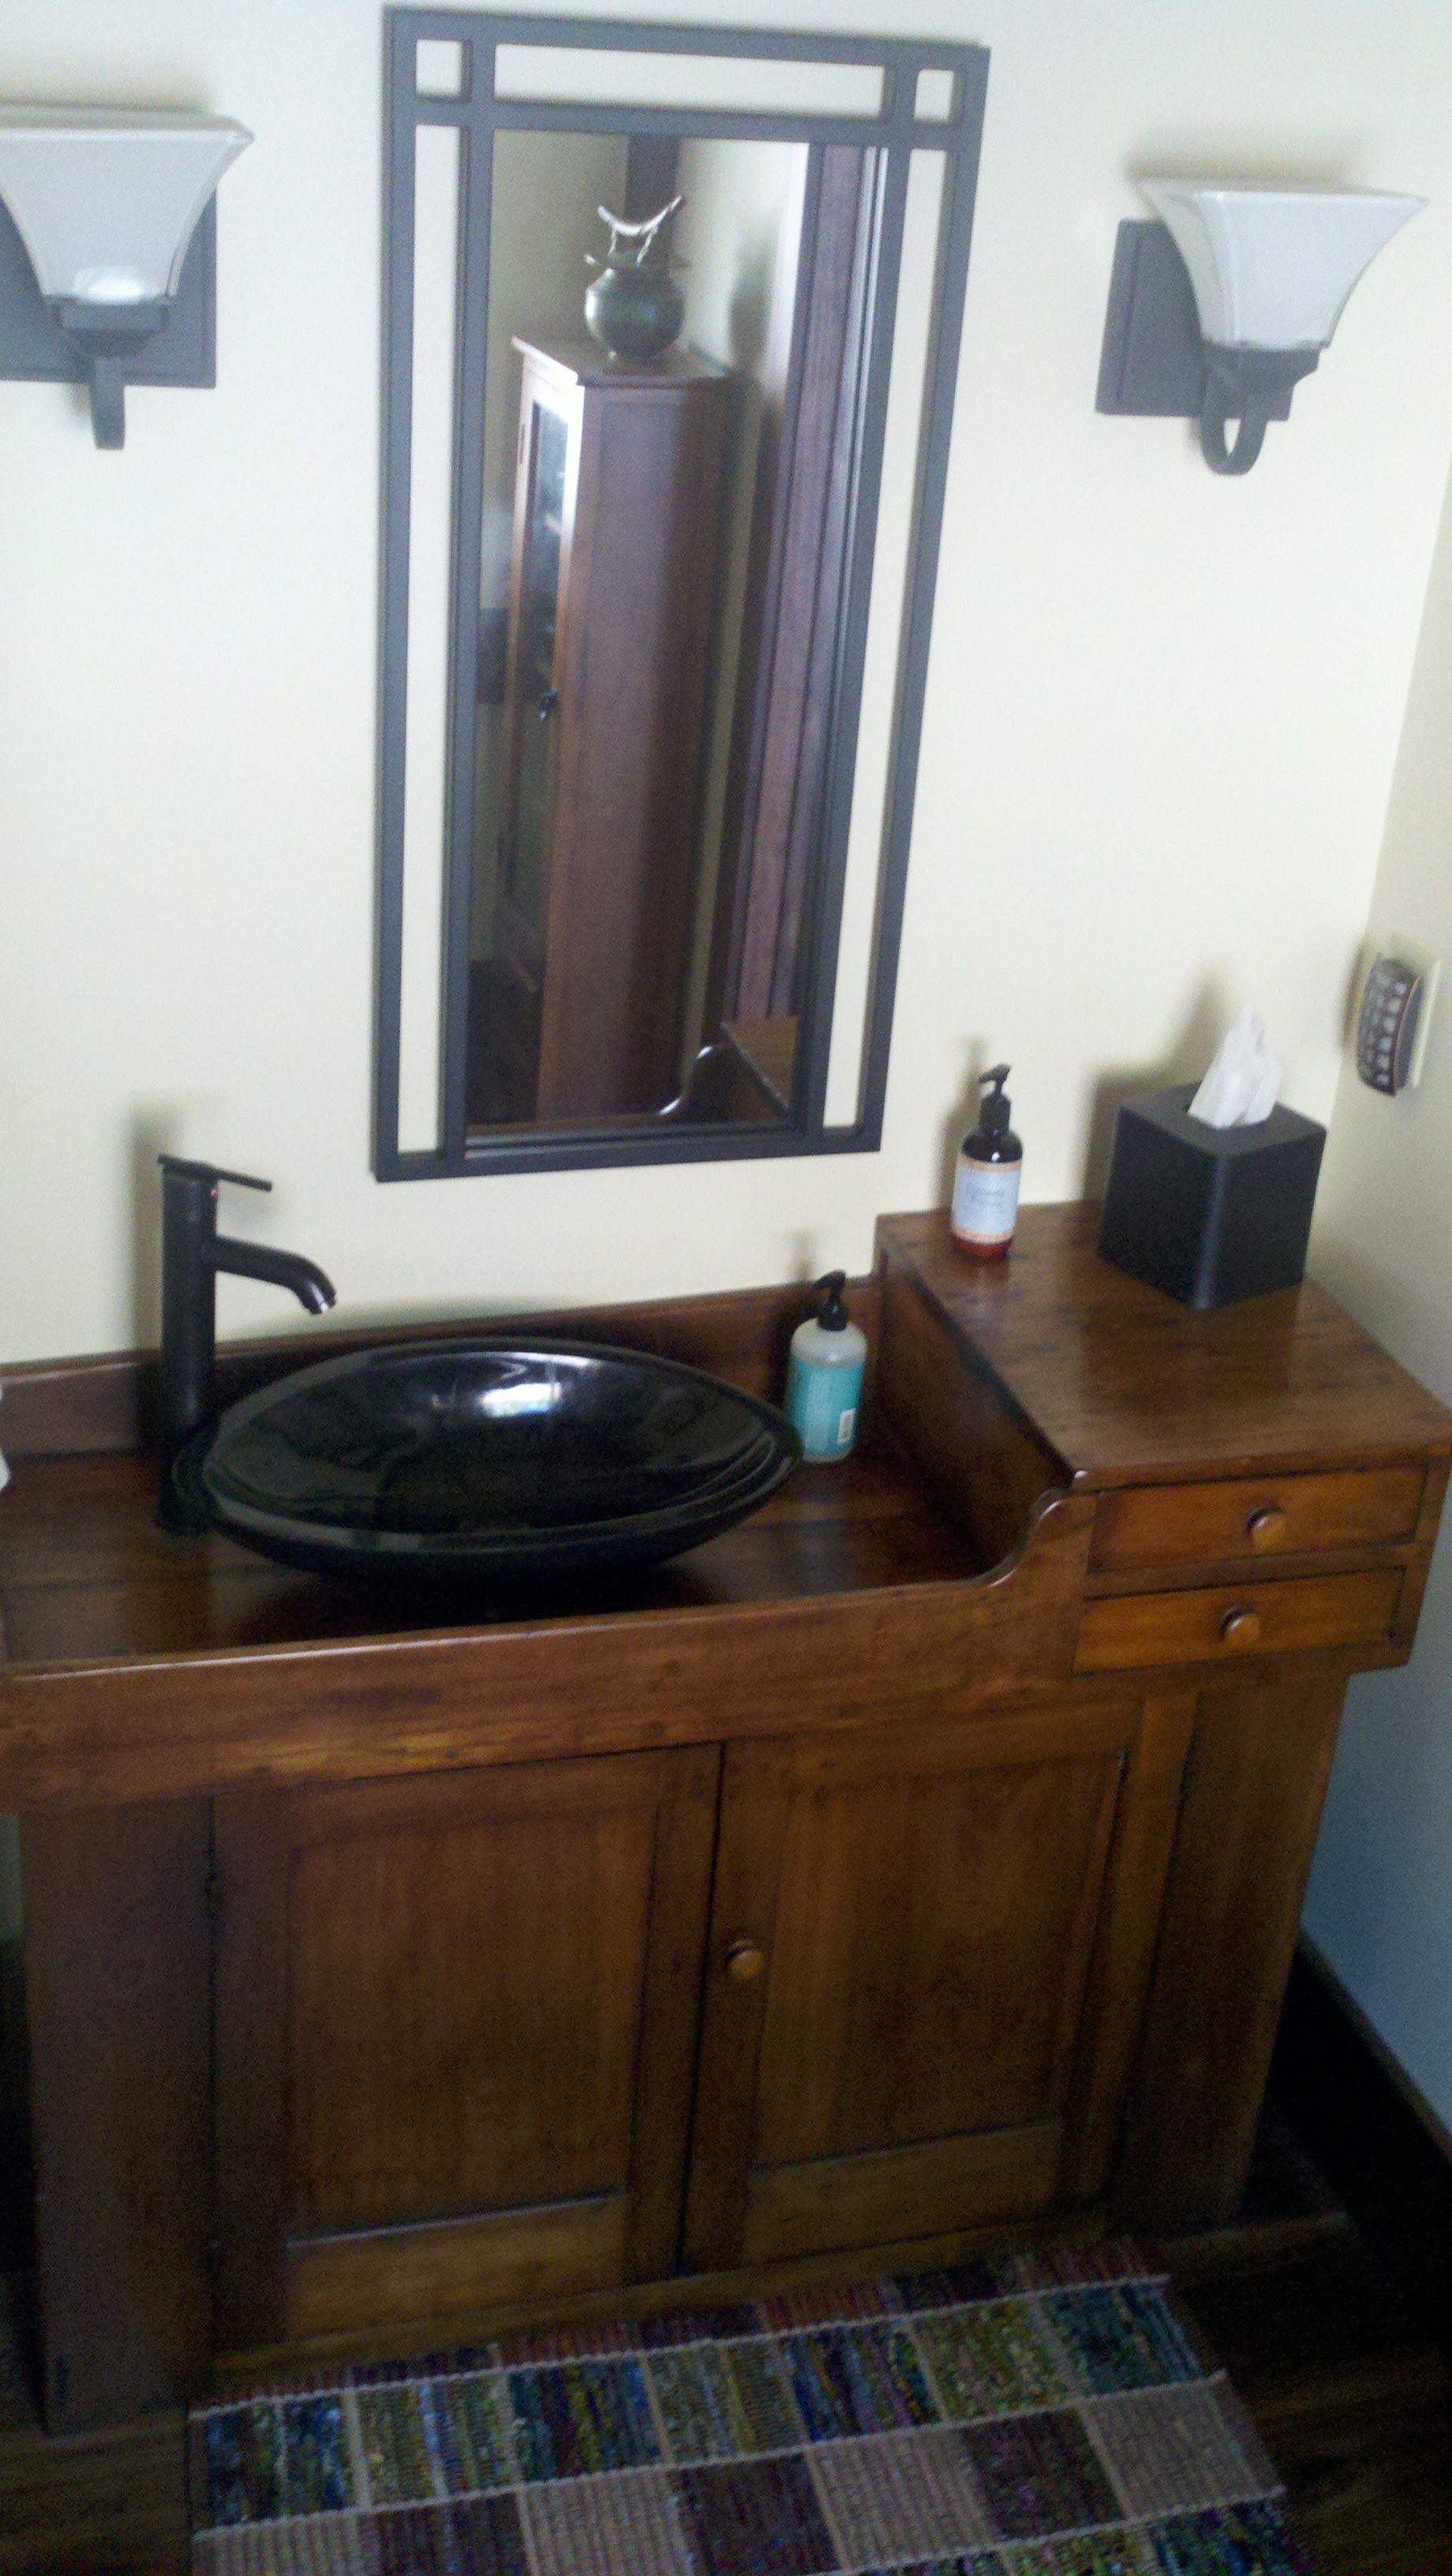 Antique Dry Sink From A Great Aunt Became A Wet Sink In This Powder Bath Granite Wash Bowl And Fixtures From An Overs Antique Dry Sink Dry Sink Sinks For Sale